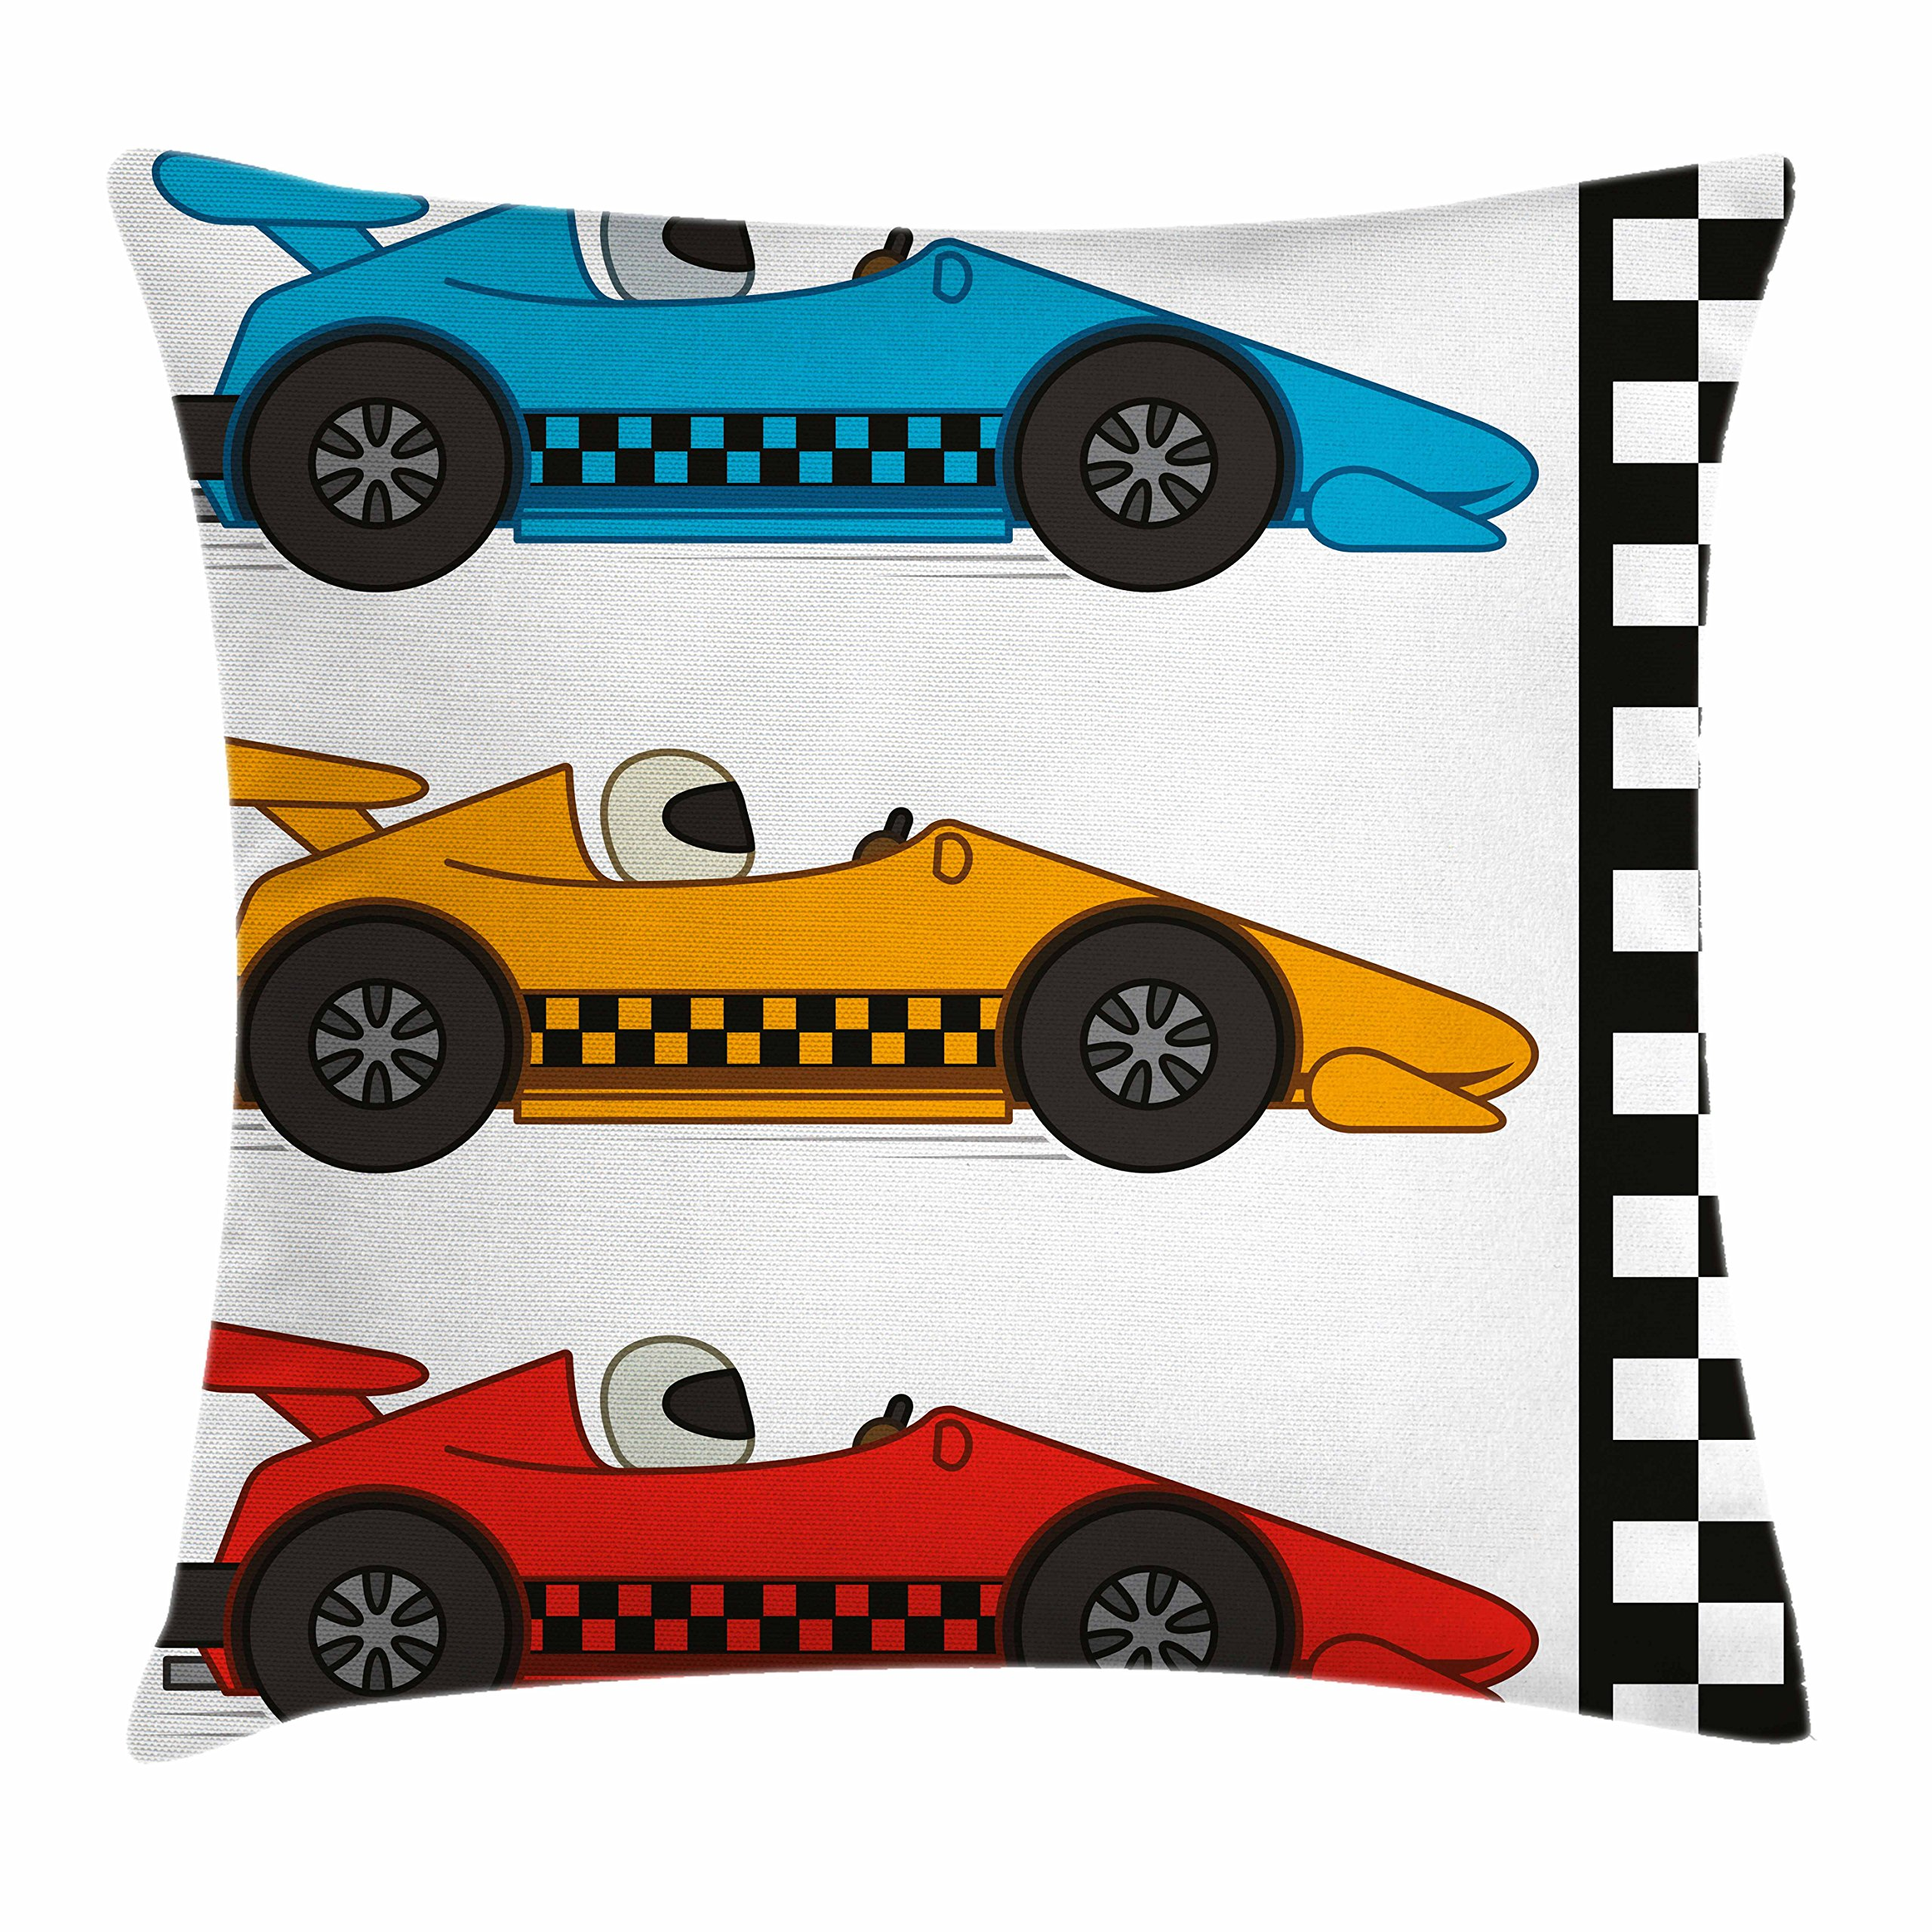 Lunarable Nursery Throw Pillow Cushion Cover, Race Cars at Start Line Adrenaline Exotic Sports Championship Theme, Decorative Square Accent Pillow Case, 16'' X 16'', Marigold Blue by Lunarable